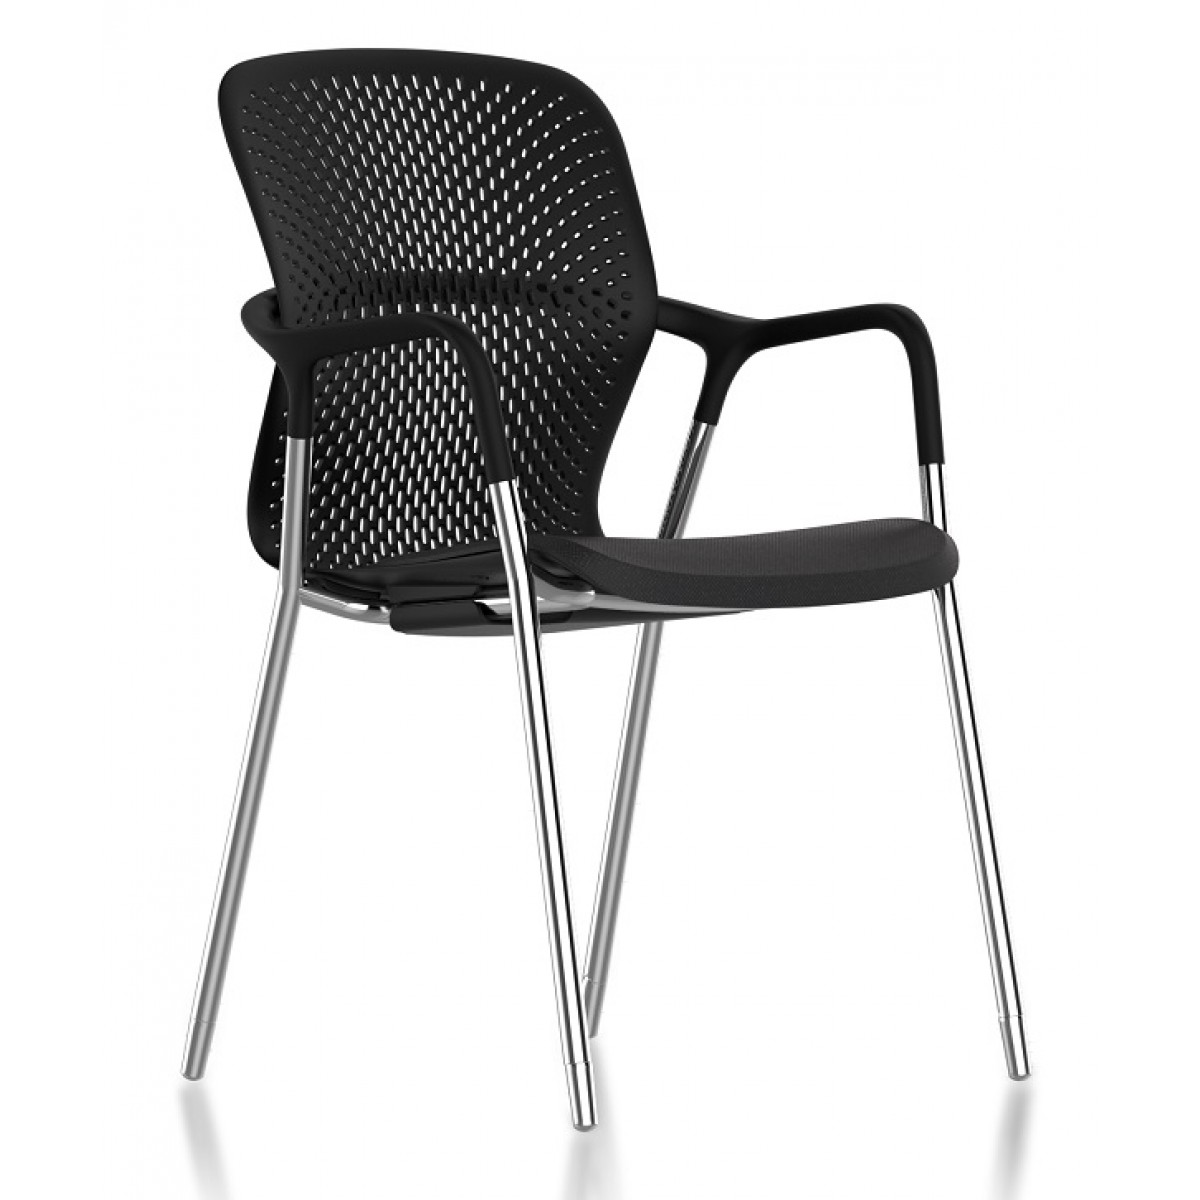 Beau Herman Miller Keyn Four Leg Chair Black